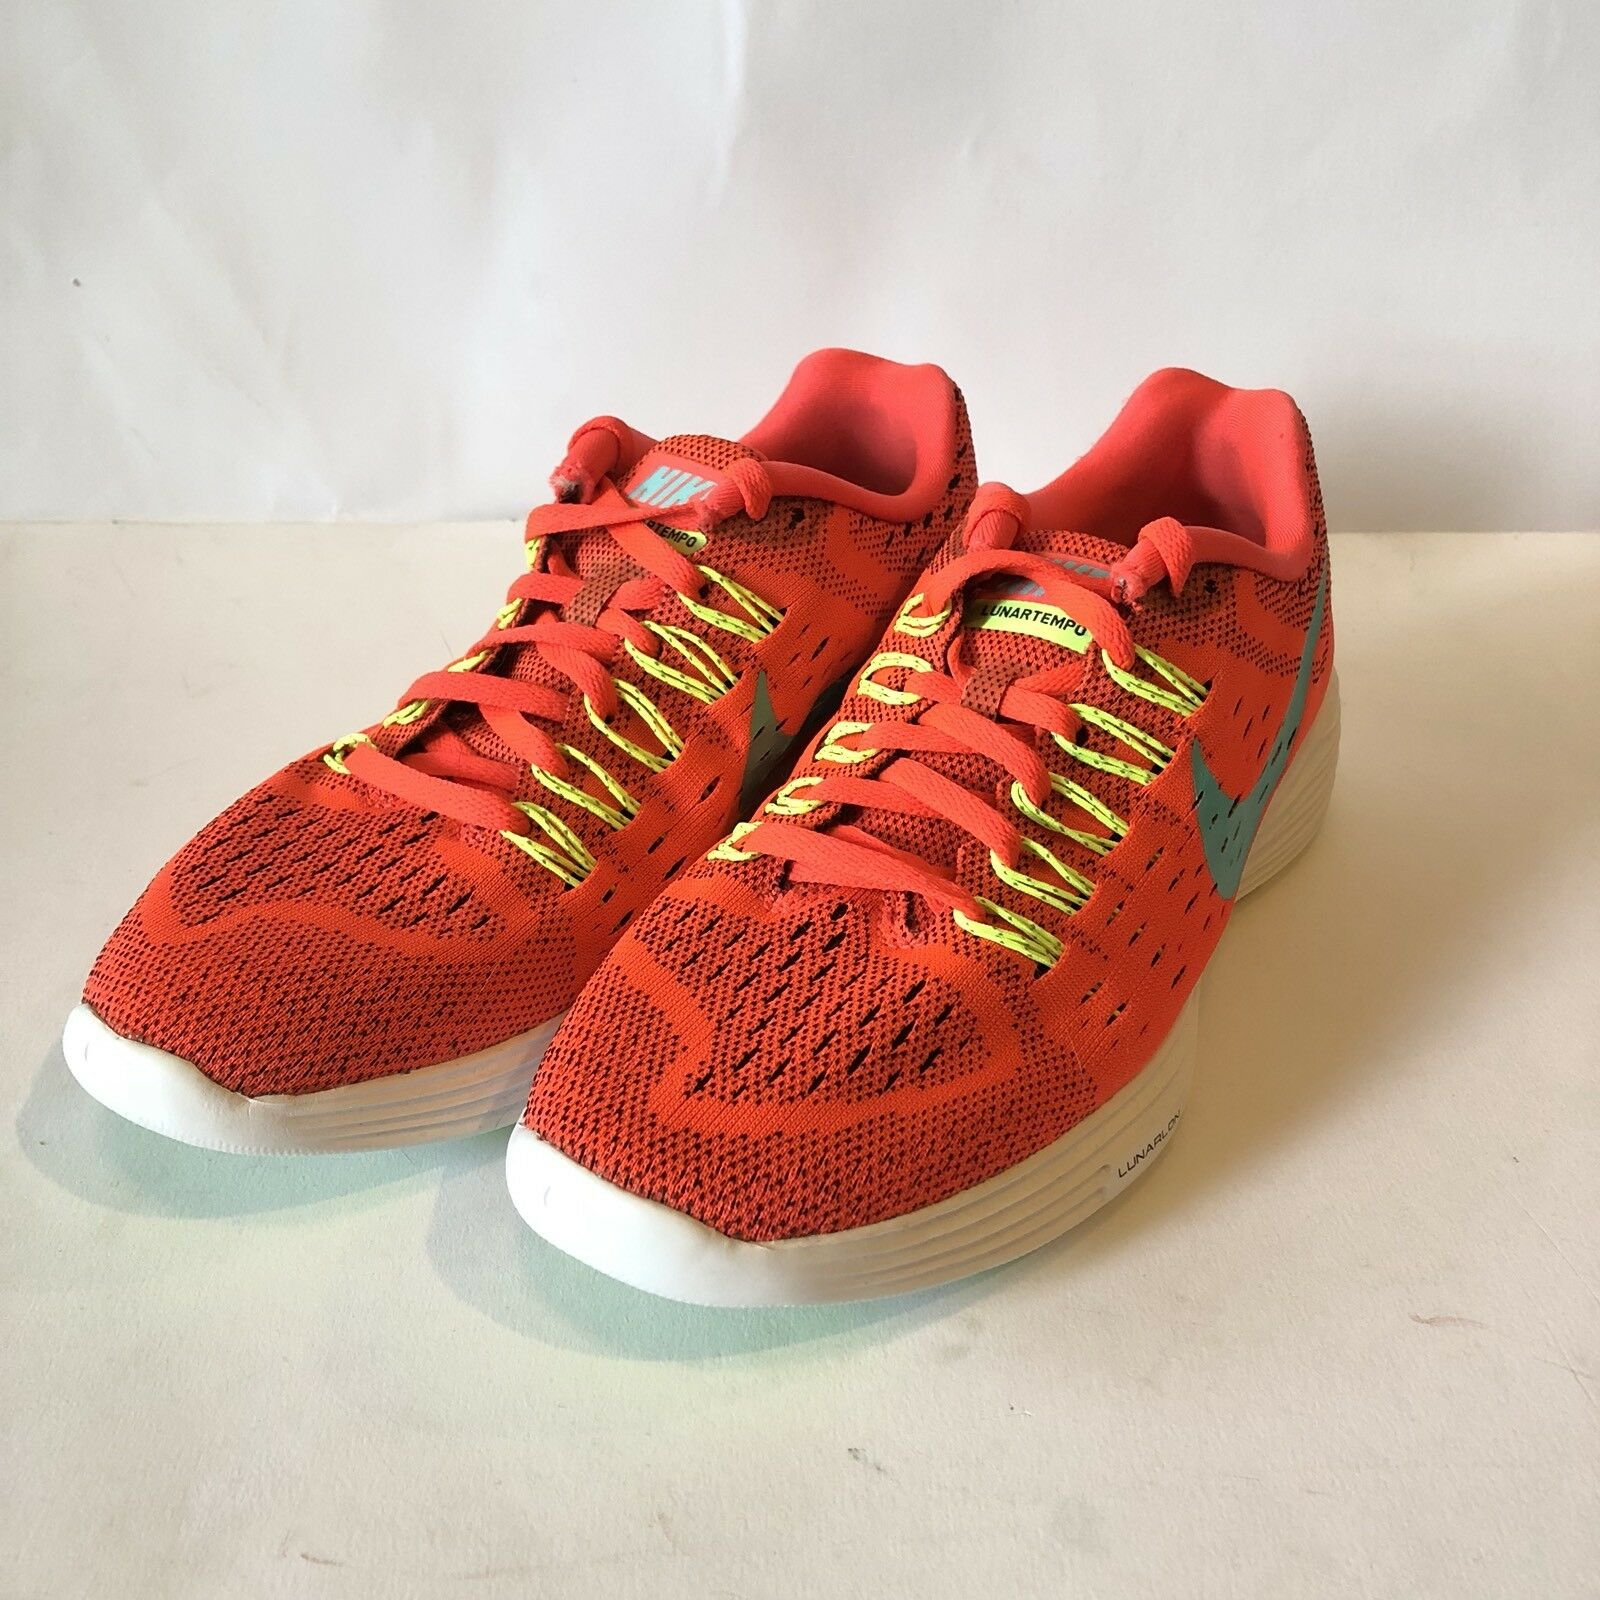 Nike Lunartempo Womens Size 7, Orange